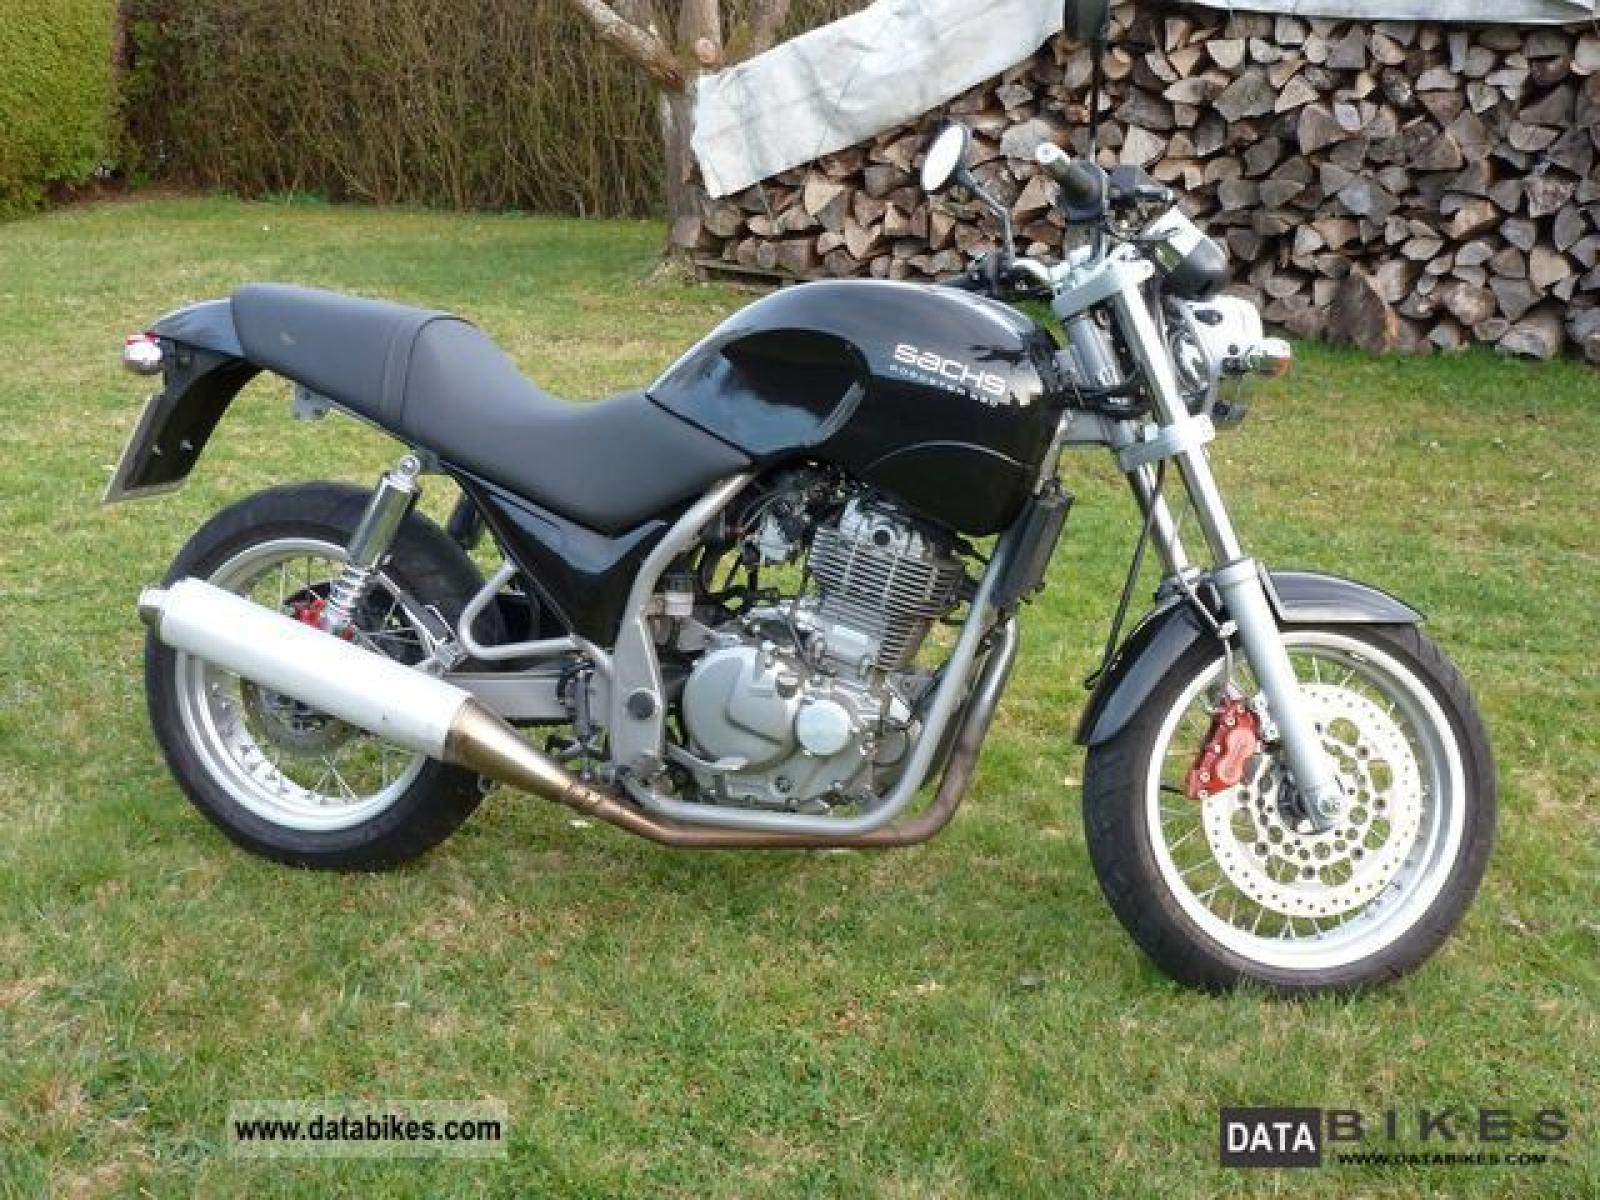 Sachs Big Roadster V 3.8 2000 images #127882